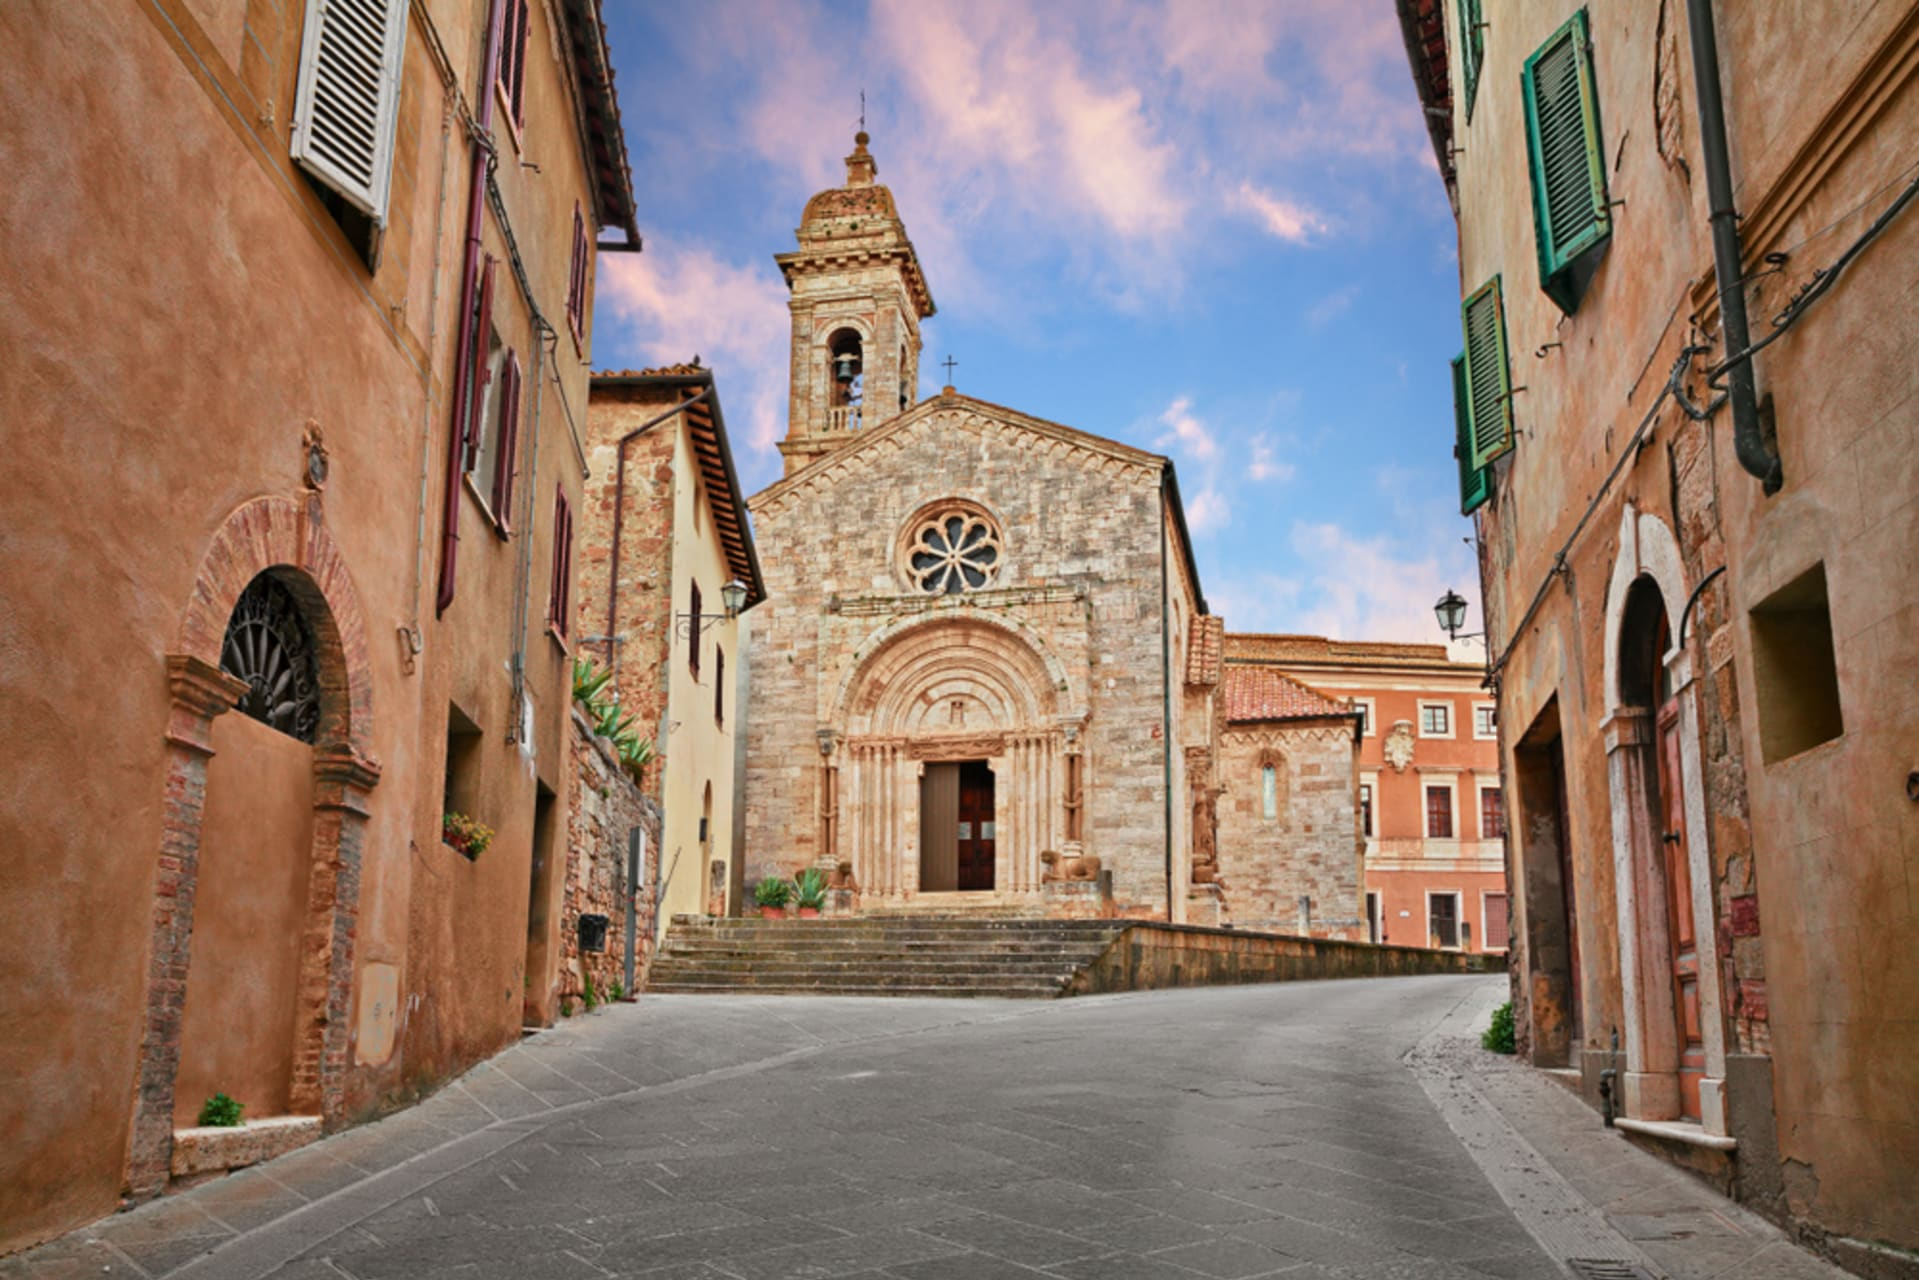 Tuscany - San Quirico d'Orcia: Living in a Medieval Village